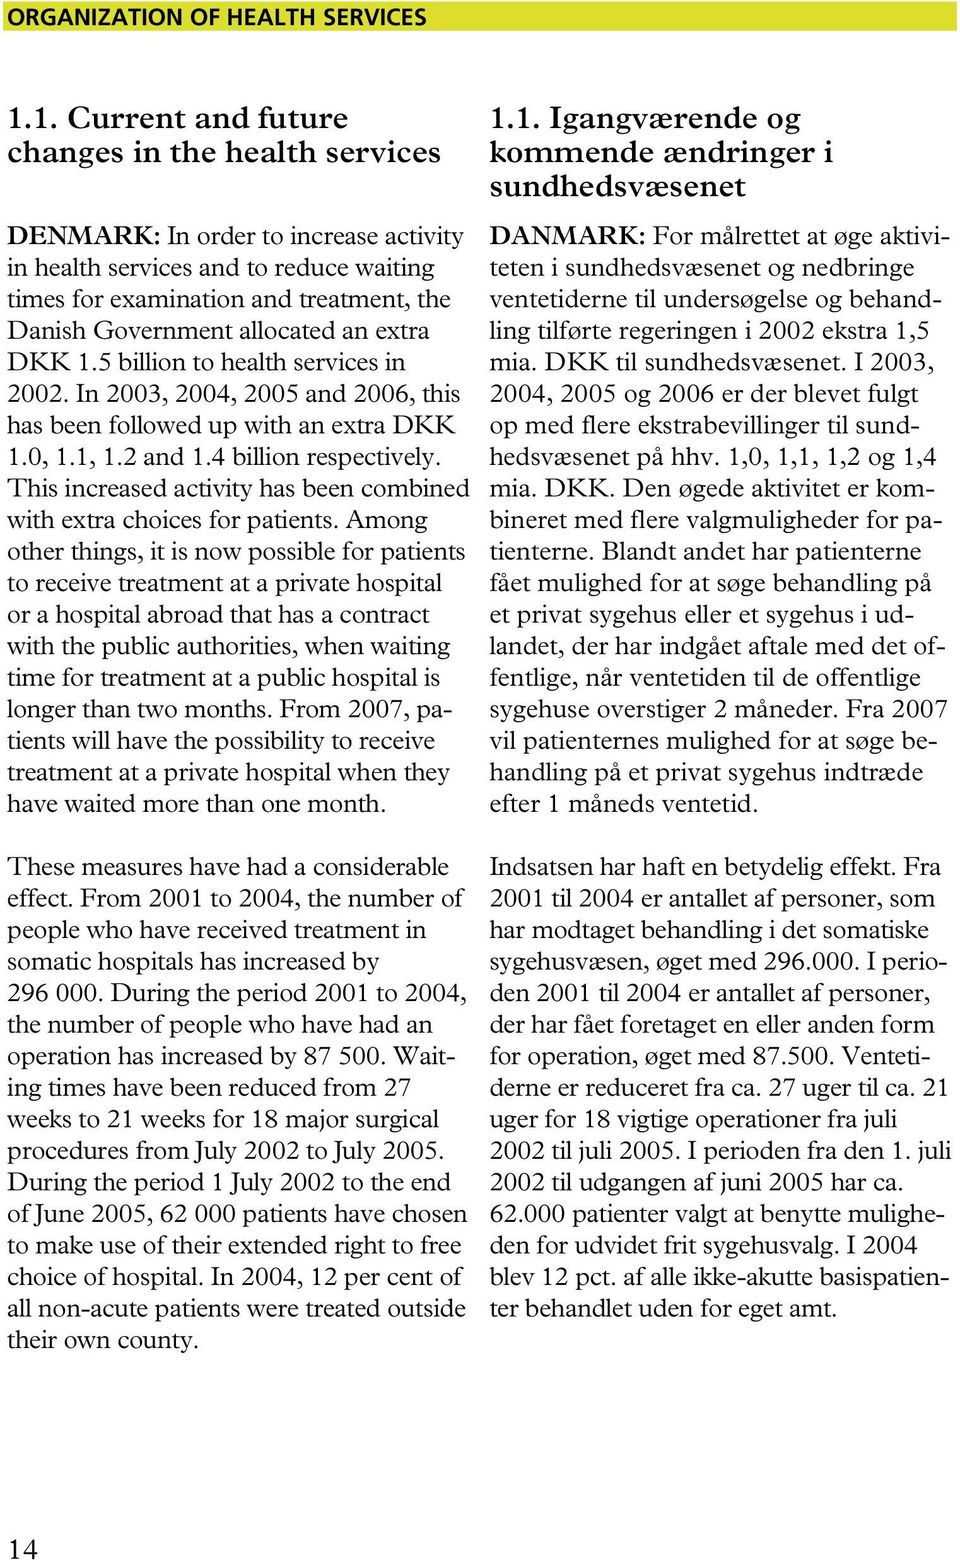 allocated an extra DKK 1.5 billion to health services in 2002. In 2003, 2004, 2005 and 2006, this has been followed up with an extra DKK 1.0, 1.1, 1.2 and 1.4 billion respectively.